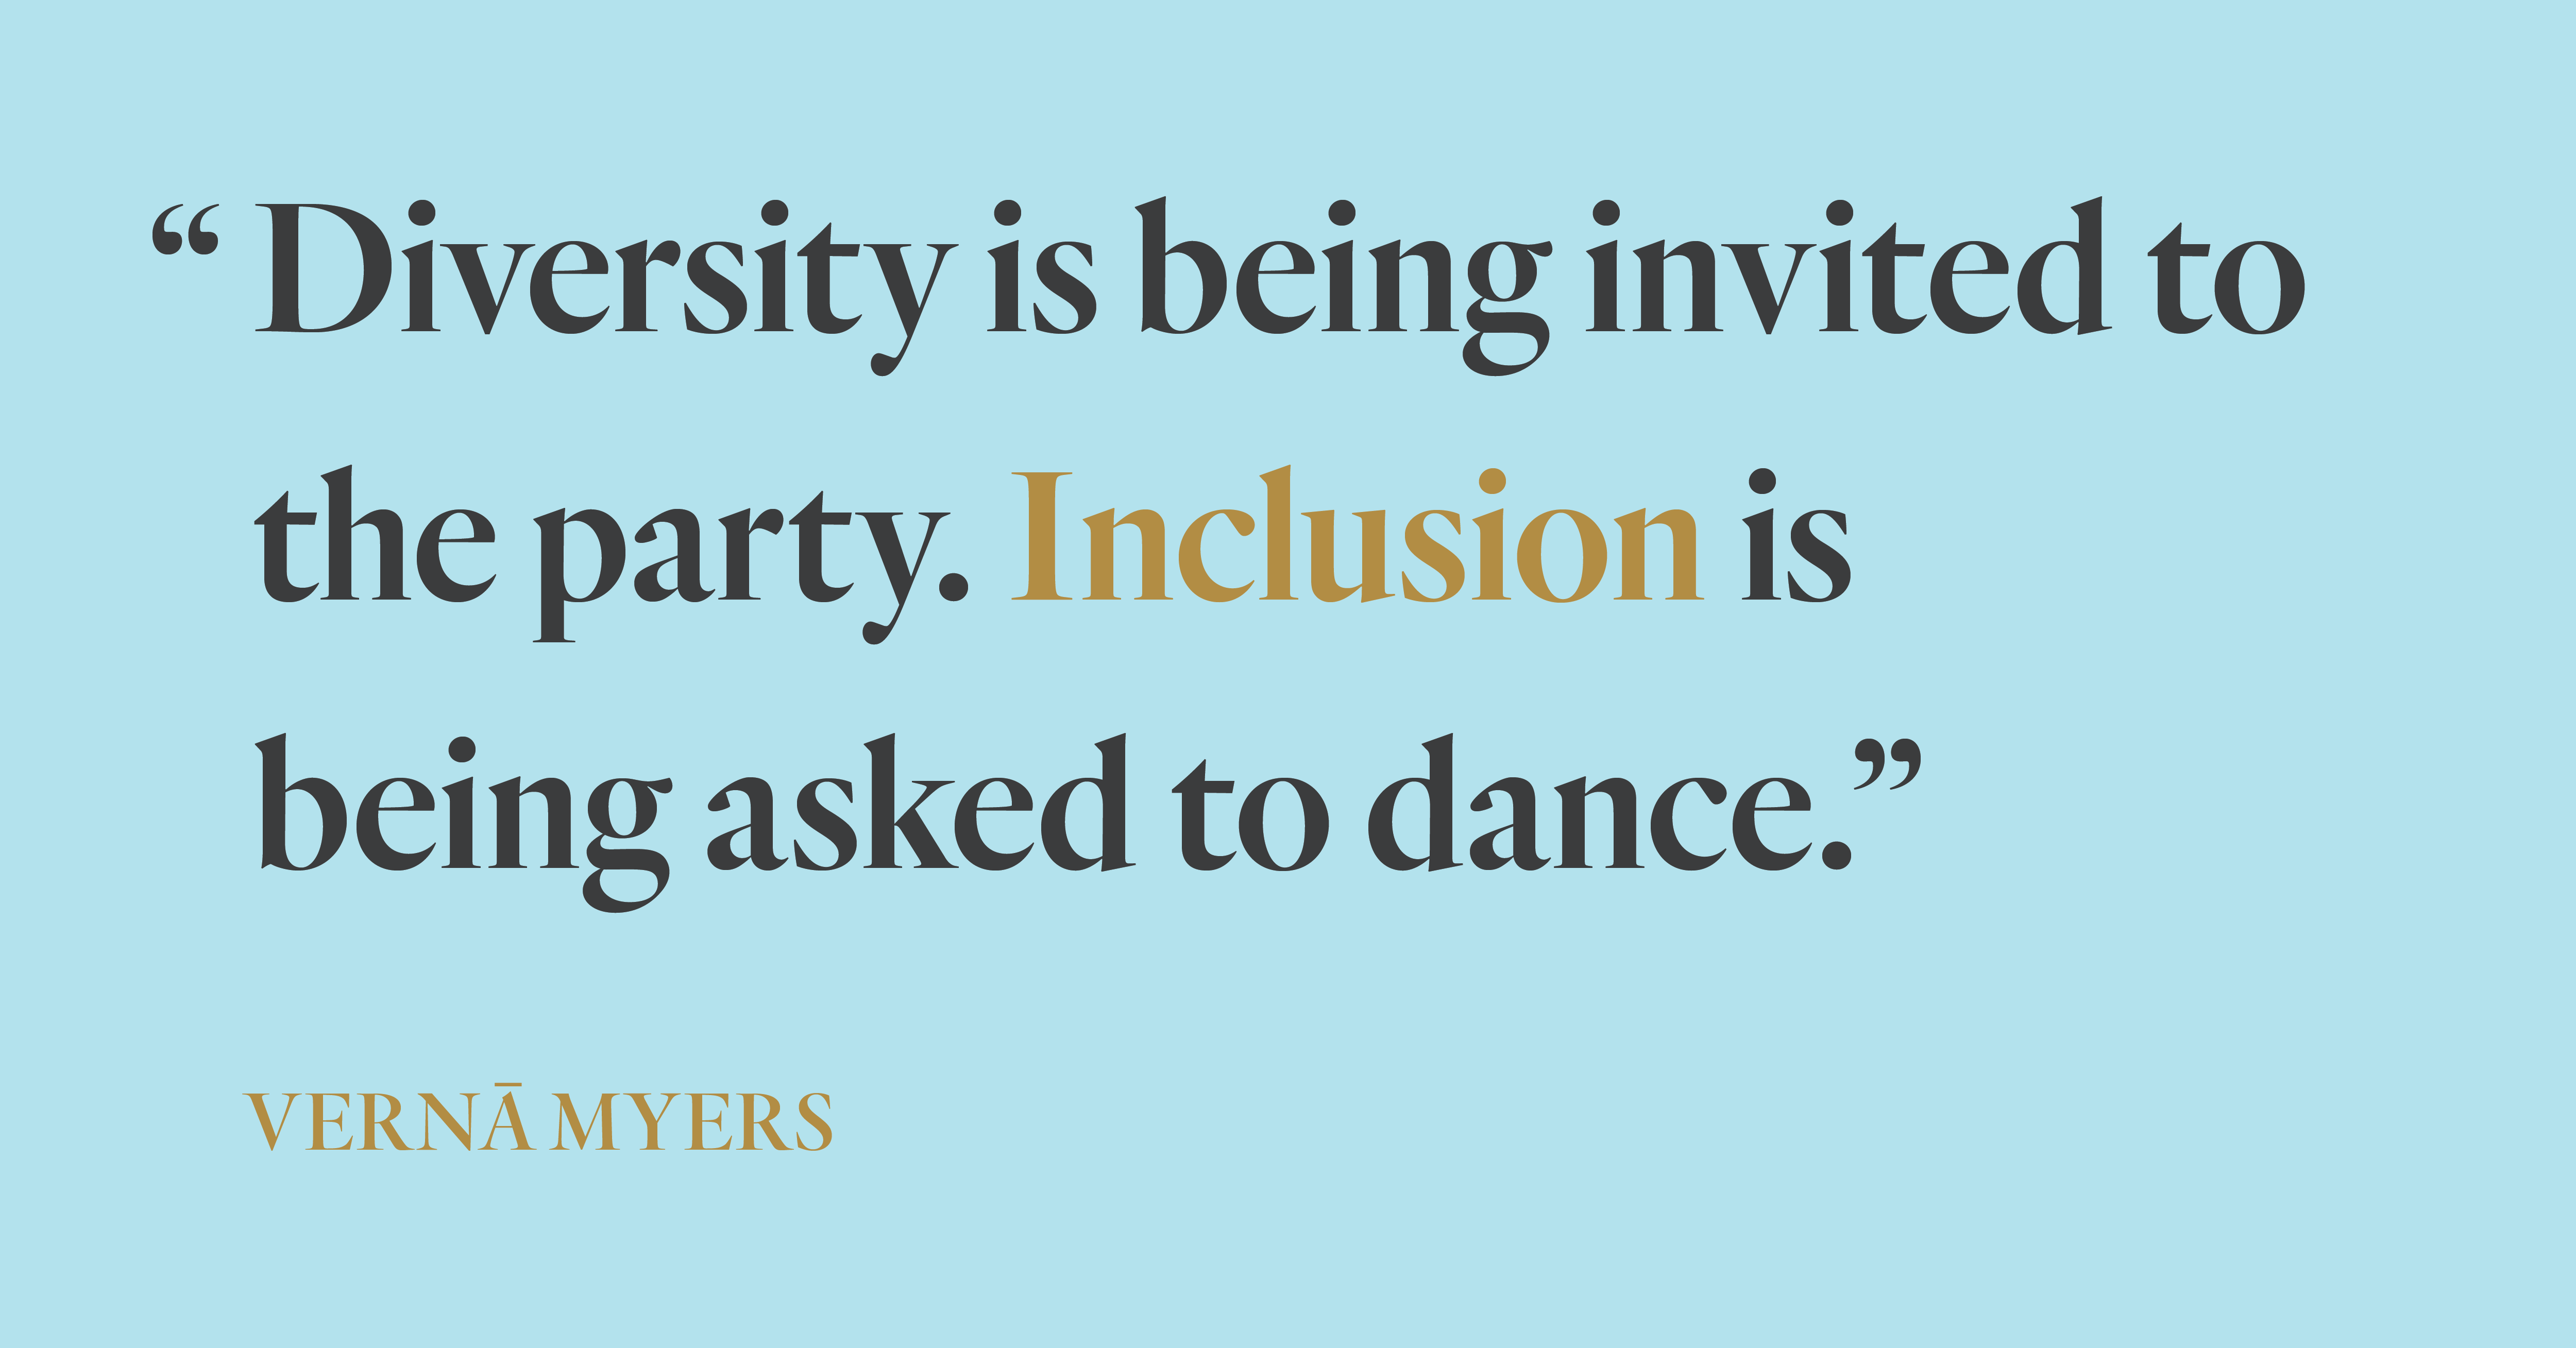 A powerful piece of wisdom from diversity and inclusion